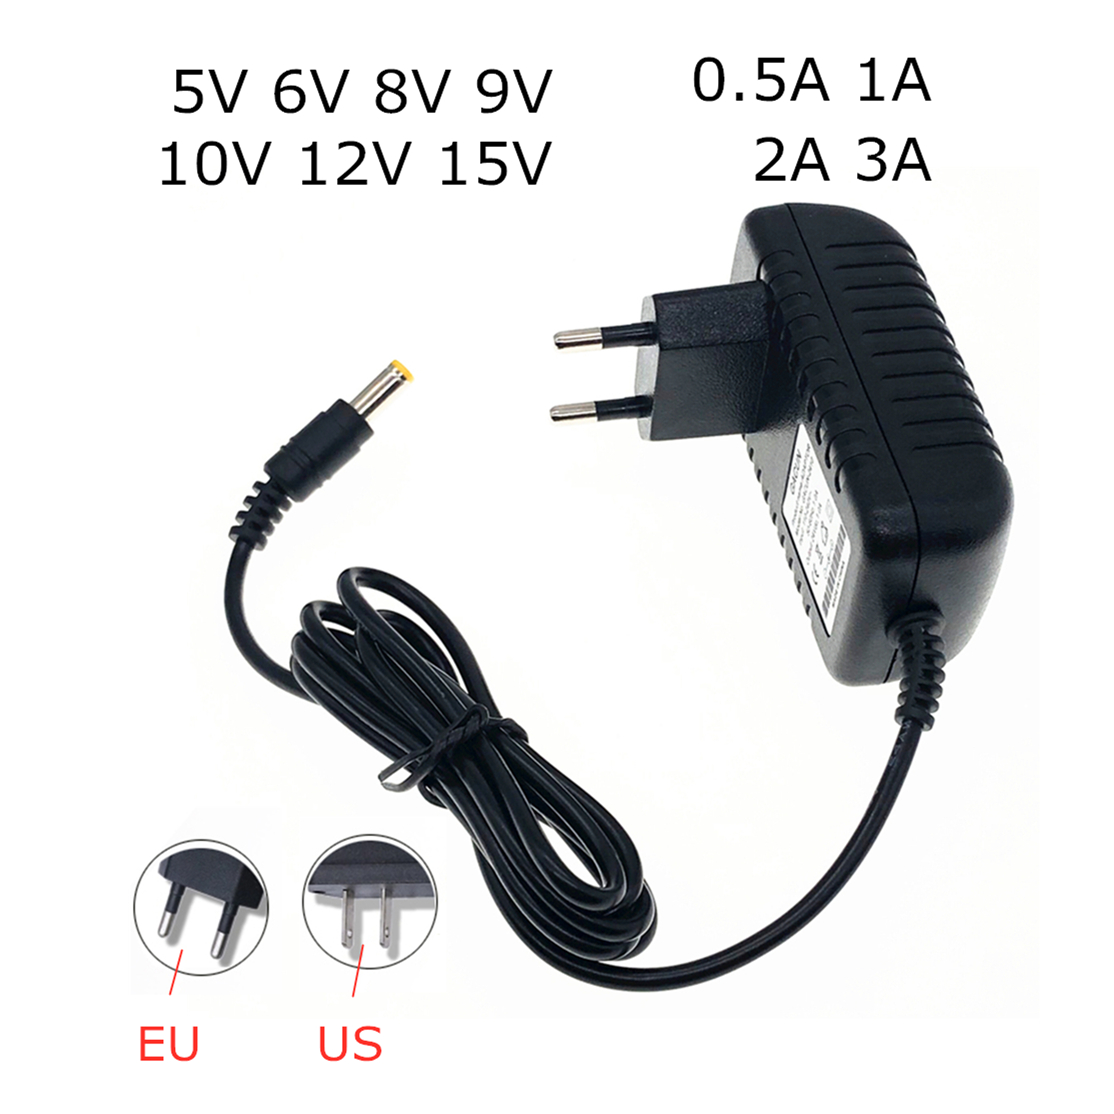 AC 110-240V DC 5V <font><b>6V</b></font> 8V 9V 10V 12V 15V 0.5 1A 2A <font><b>3A</b></font> Universal <font><b>Power</b></font> Adapter <font><b>Supply</b></font> Charger adapter for LED light strips Eu Us image